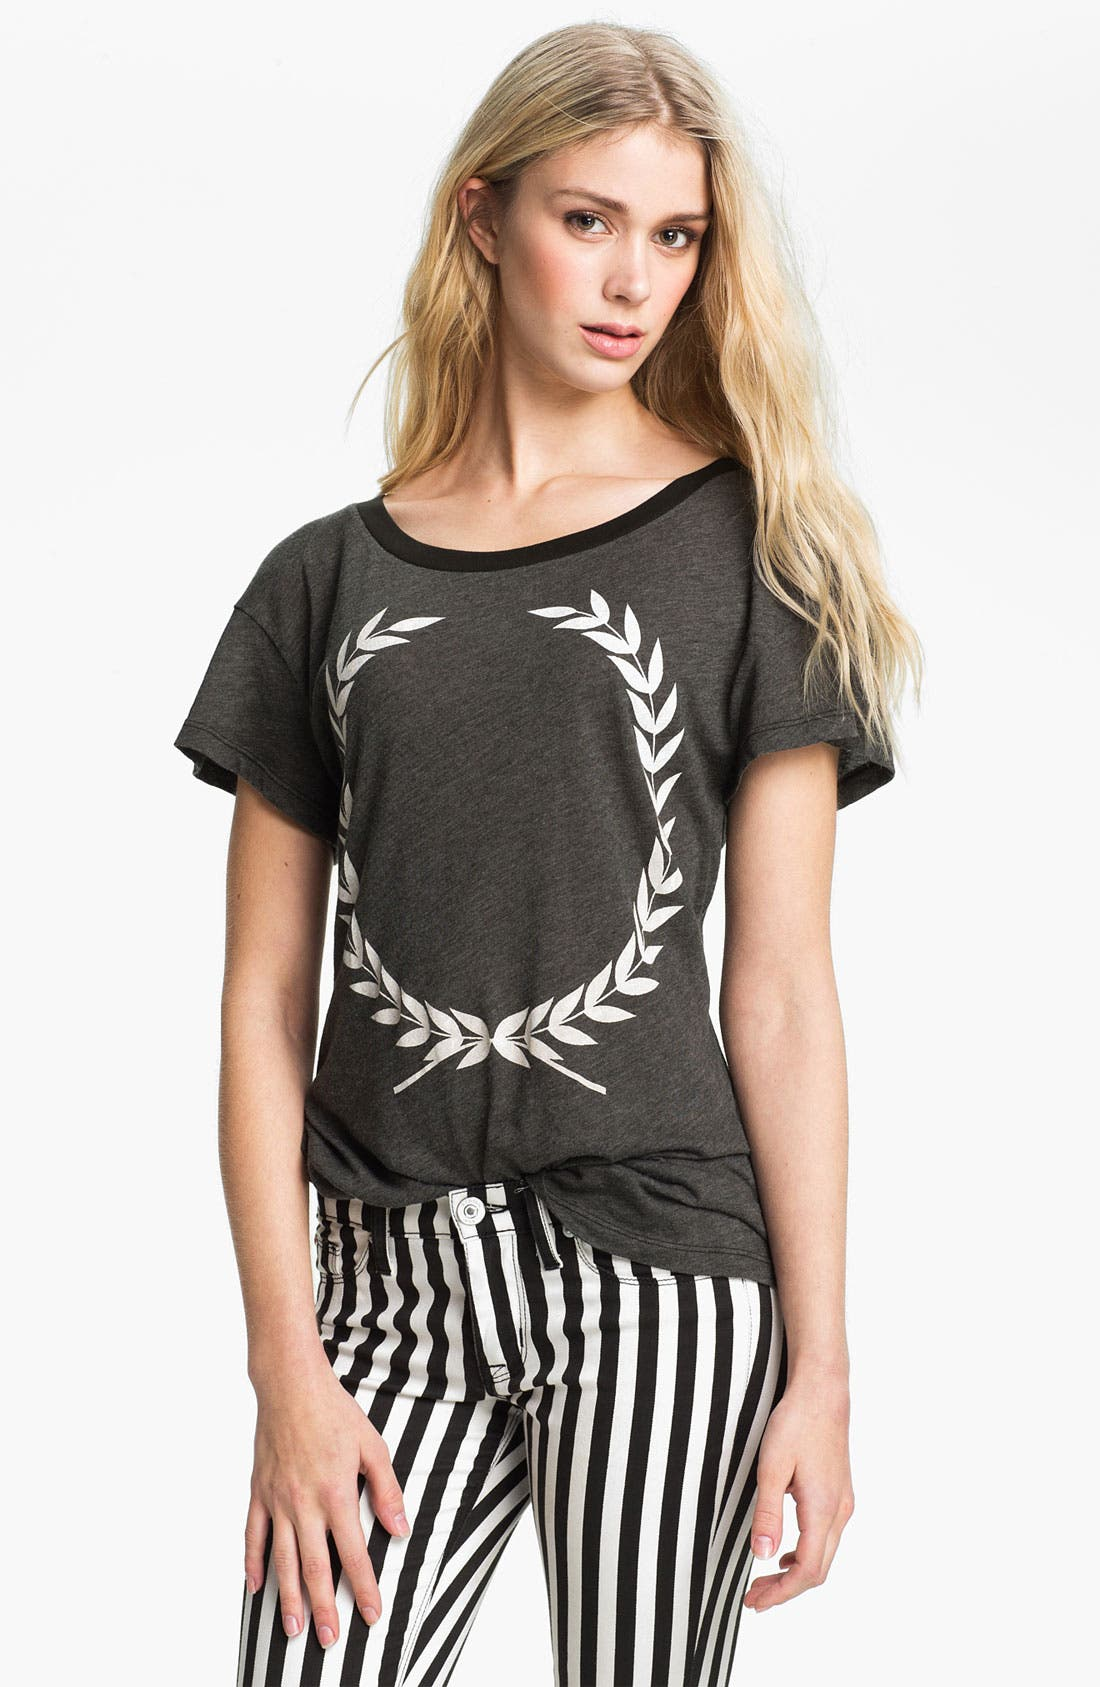 Alternate Image 1 Selected - Wildfox 'Laurel' Graphic Tee (Nordstrom Exclusive)